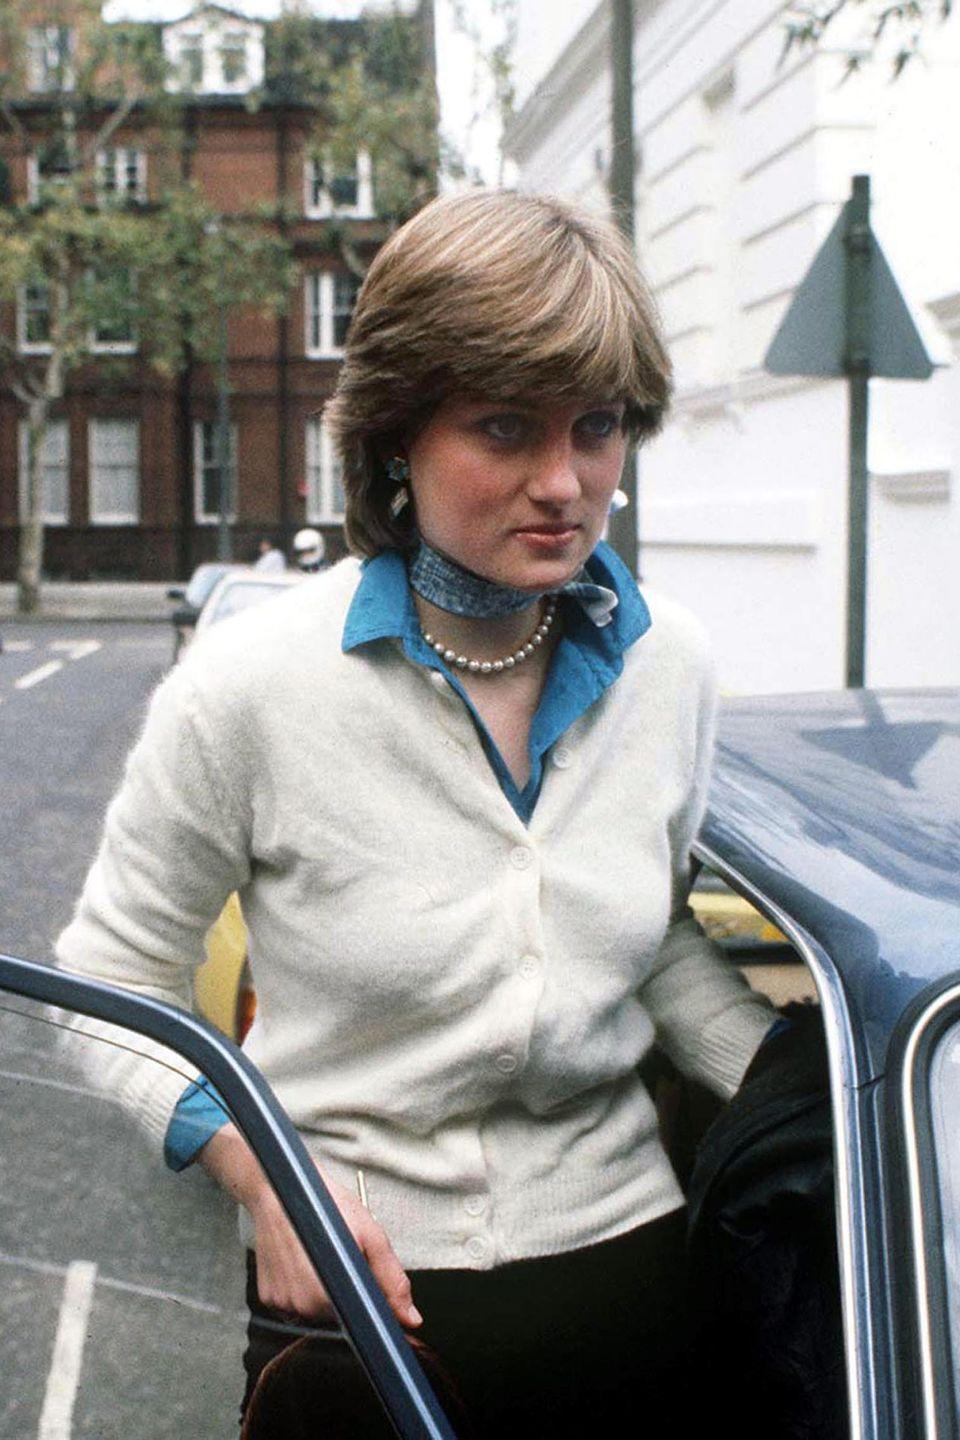 """<p>Photographed outside of her flat in December, Lady Diana Spencer was about to become the first Englishwoman in centuries to <a href=""""https://web.archive.org/web/20000819020342/http://www.washingtonpost.com/wp-srv/inatl/longterm/diana/stories/glamor0901.htm"""" rel=""""nofollow noopener"""" target=""""_blank"""" data-ylk=""""slk:marry an heir apparent"""" class=""""link rapid-noclick-resp"""">marry an heir apparent</a>, and the first one in all of royal history to have a paying job before the engagement.</p>"""